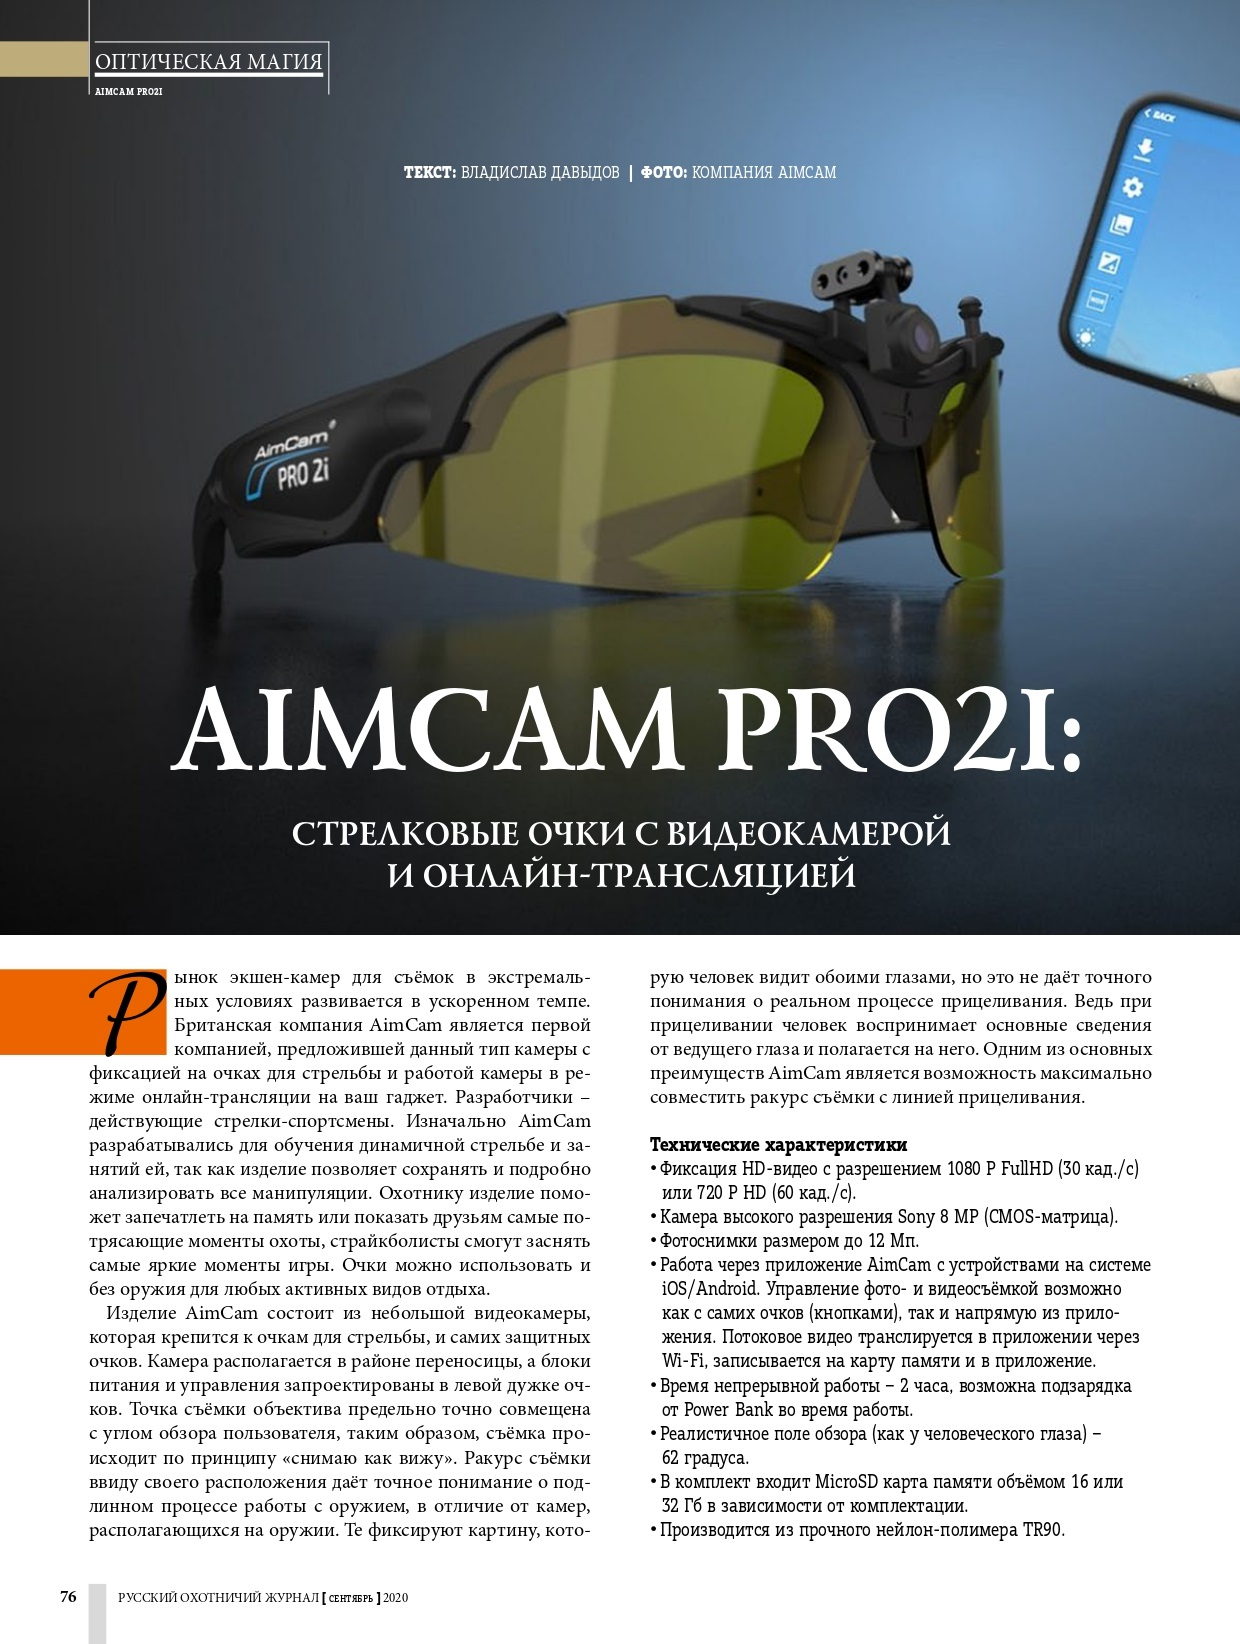 AimCam page-1